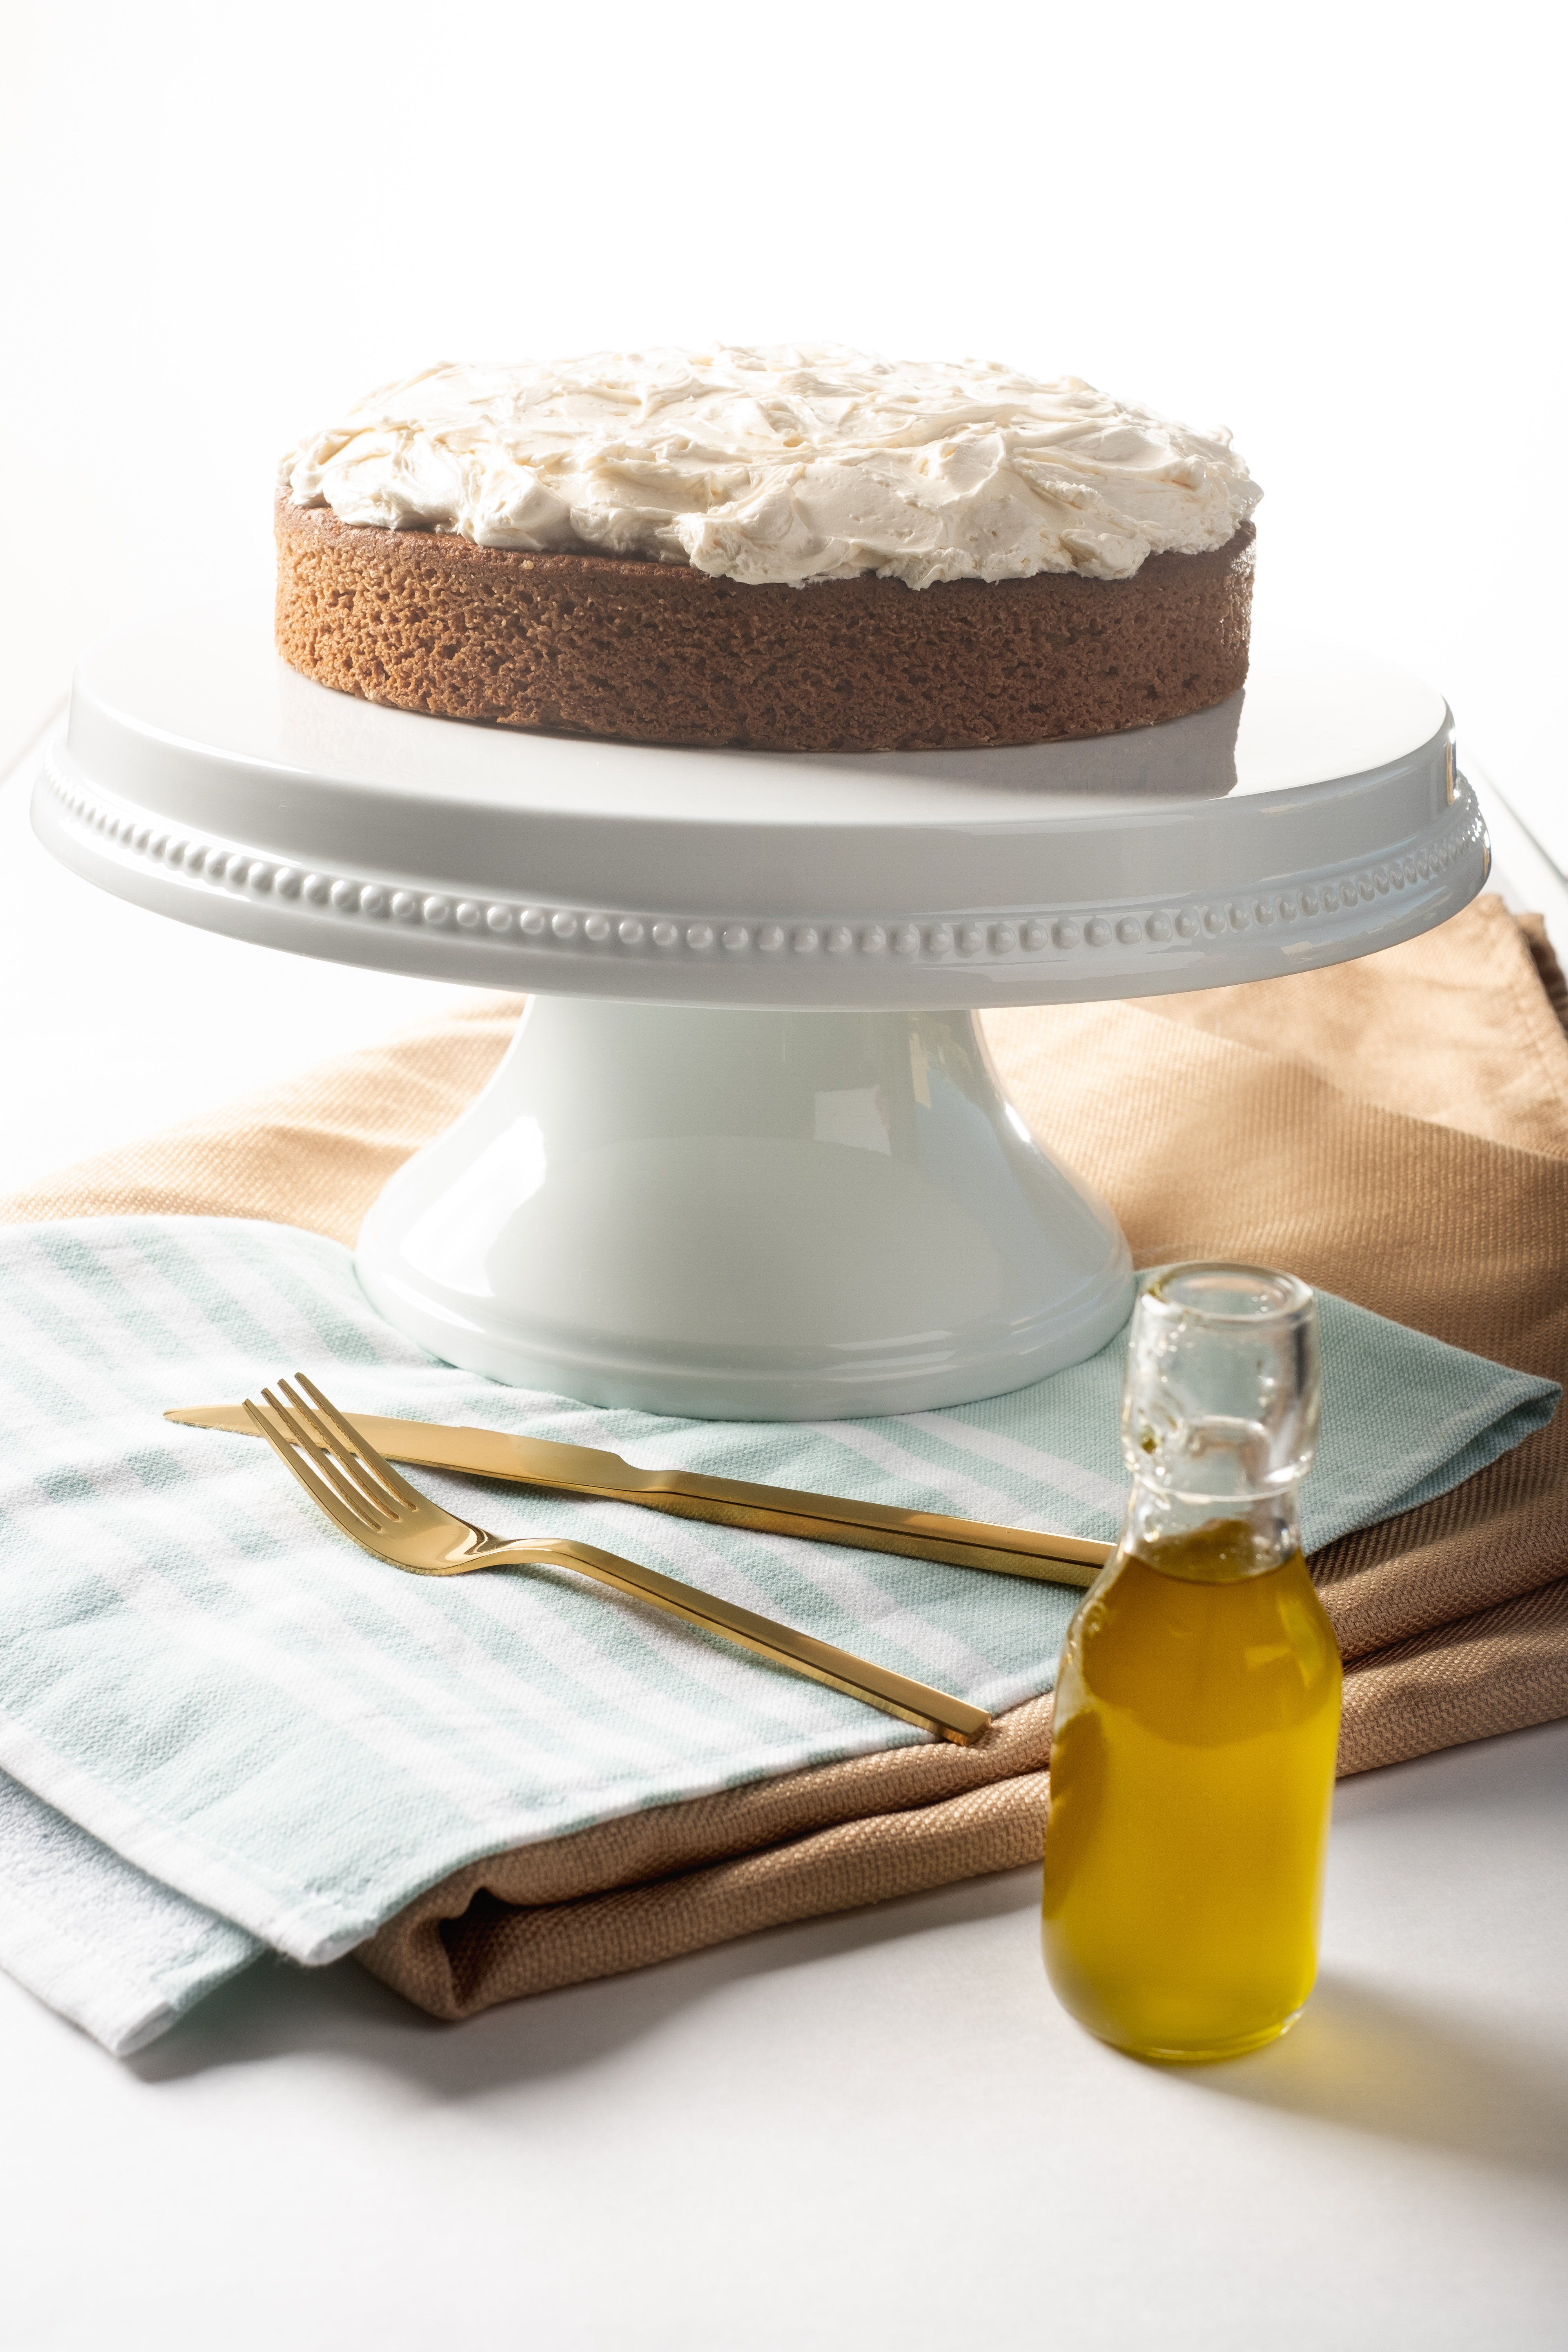 Ww Olive Oil Cake 062 Edit